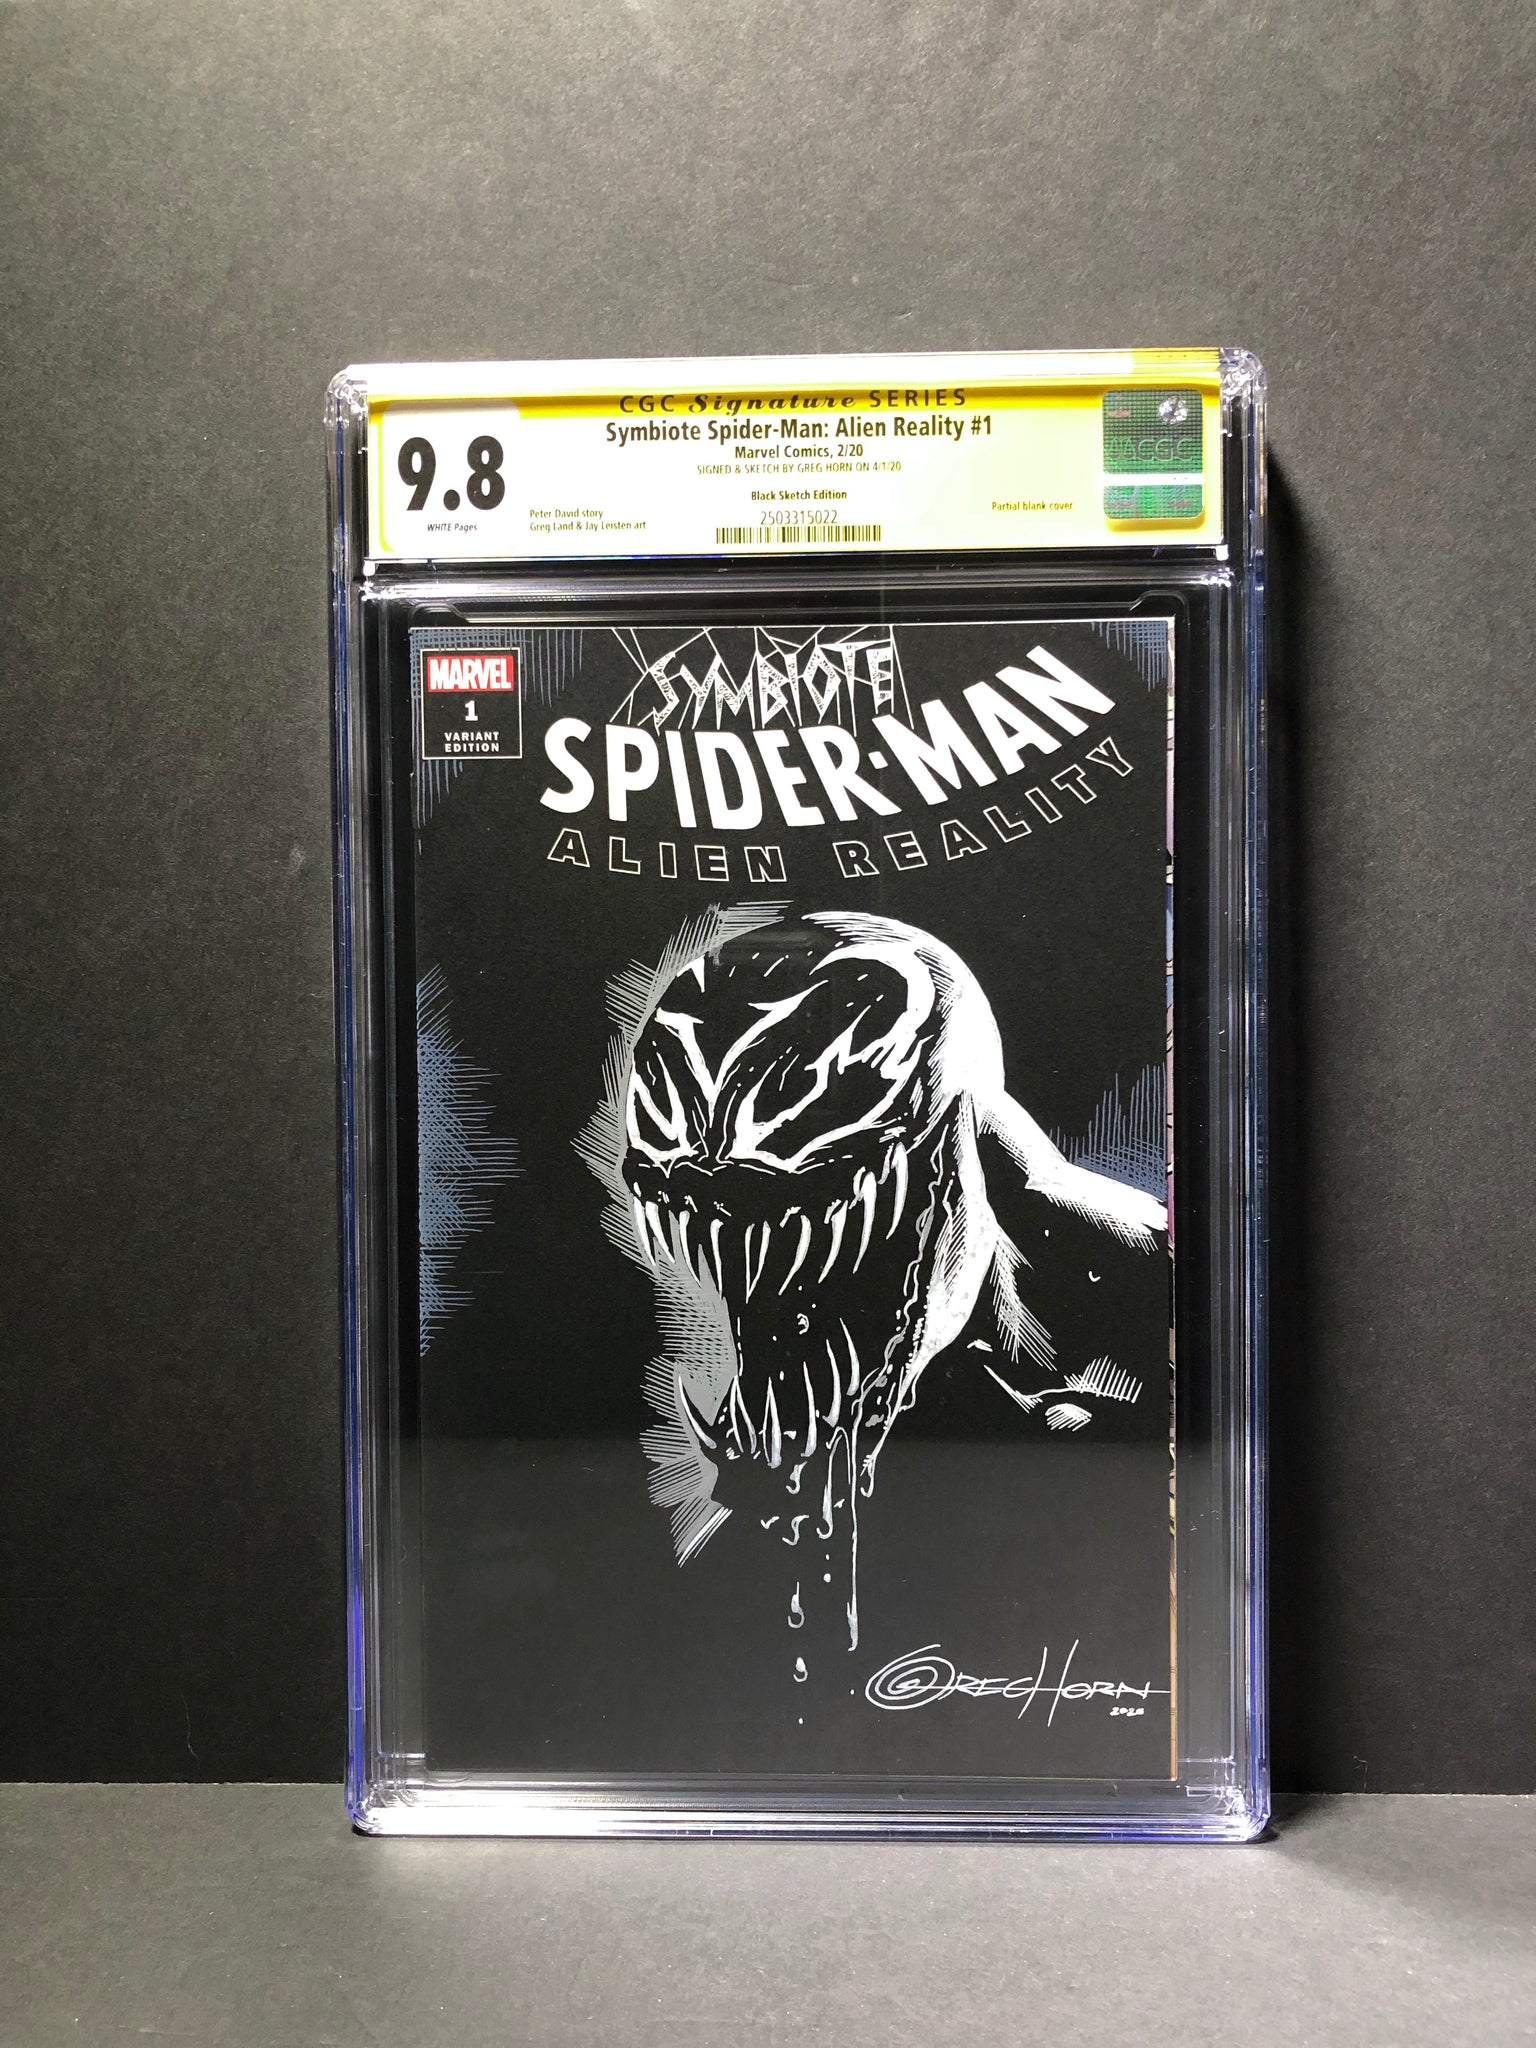 Symbiote Spider-Man Altered Reality CGC 9.8 Signature Series Signed and Sketched by Greg Horn